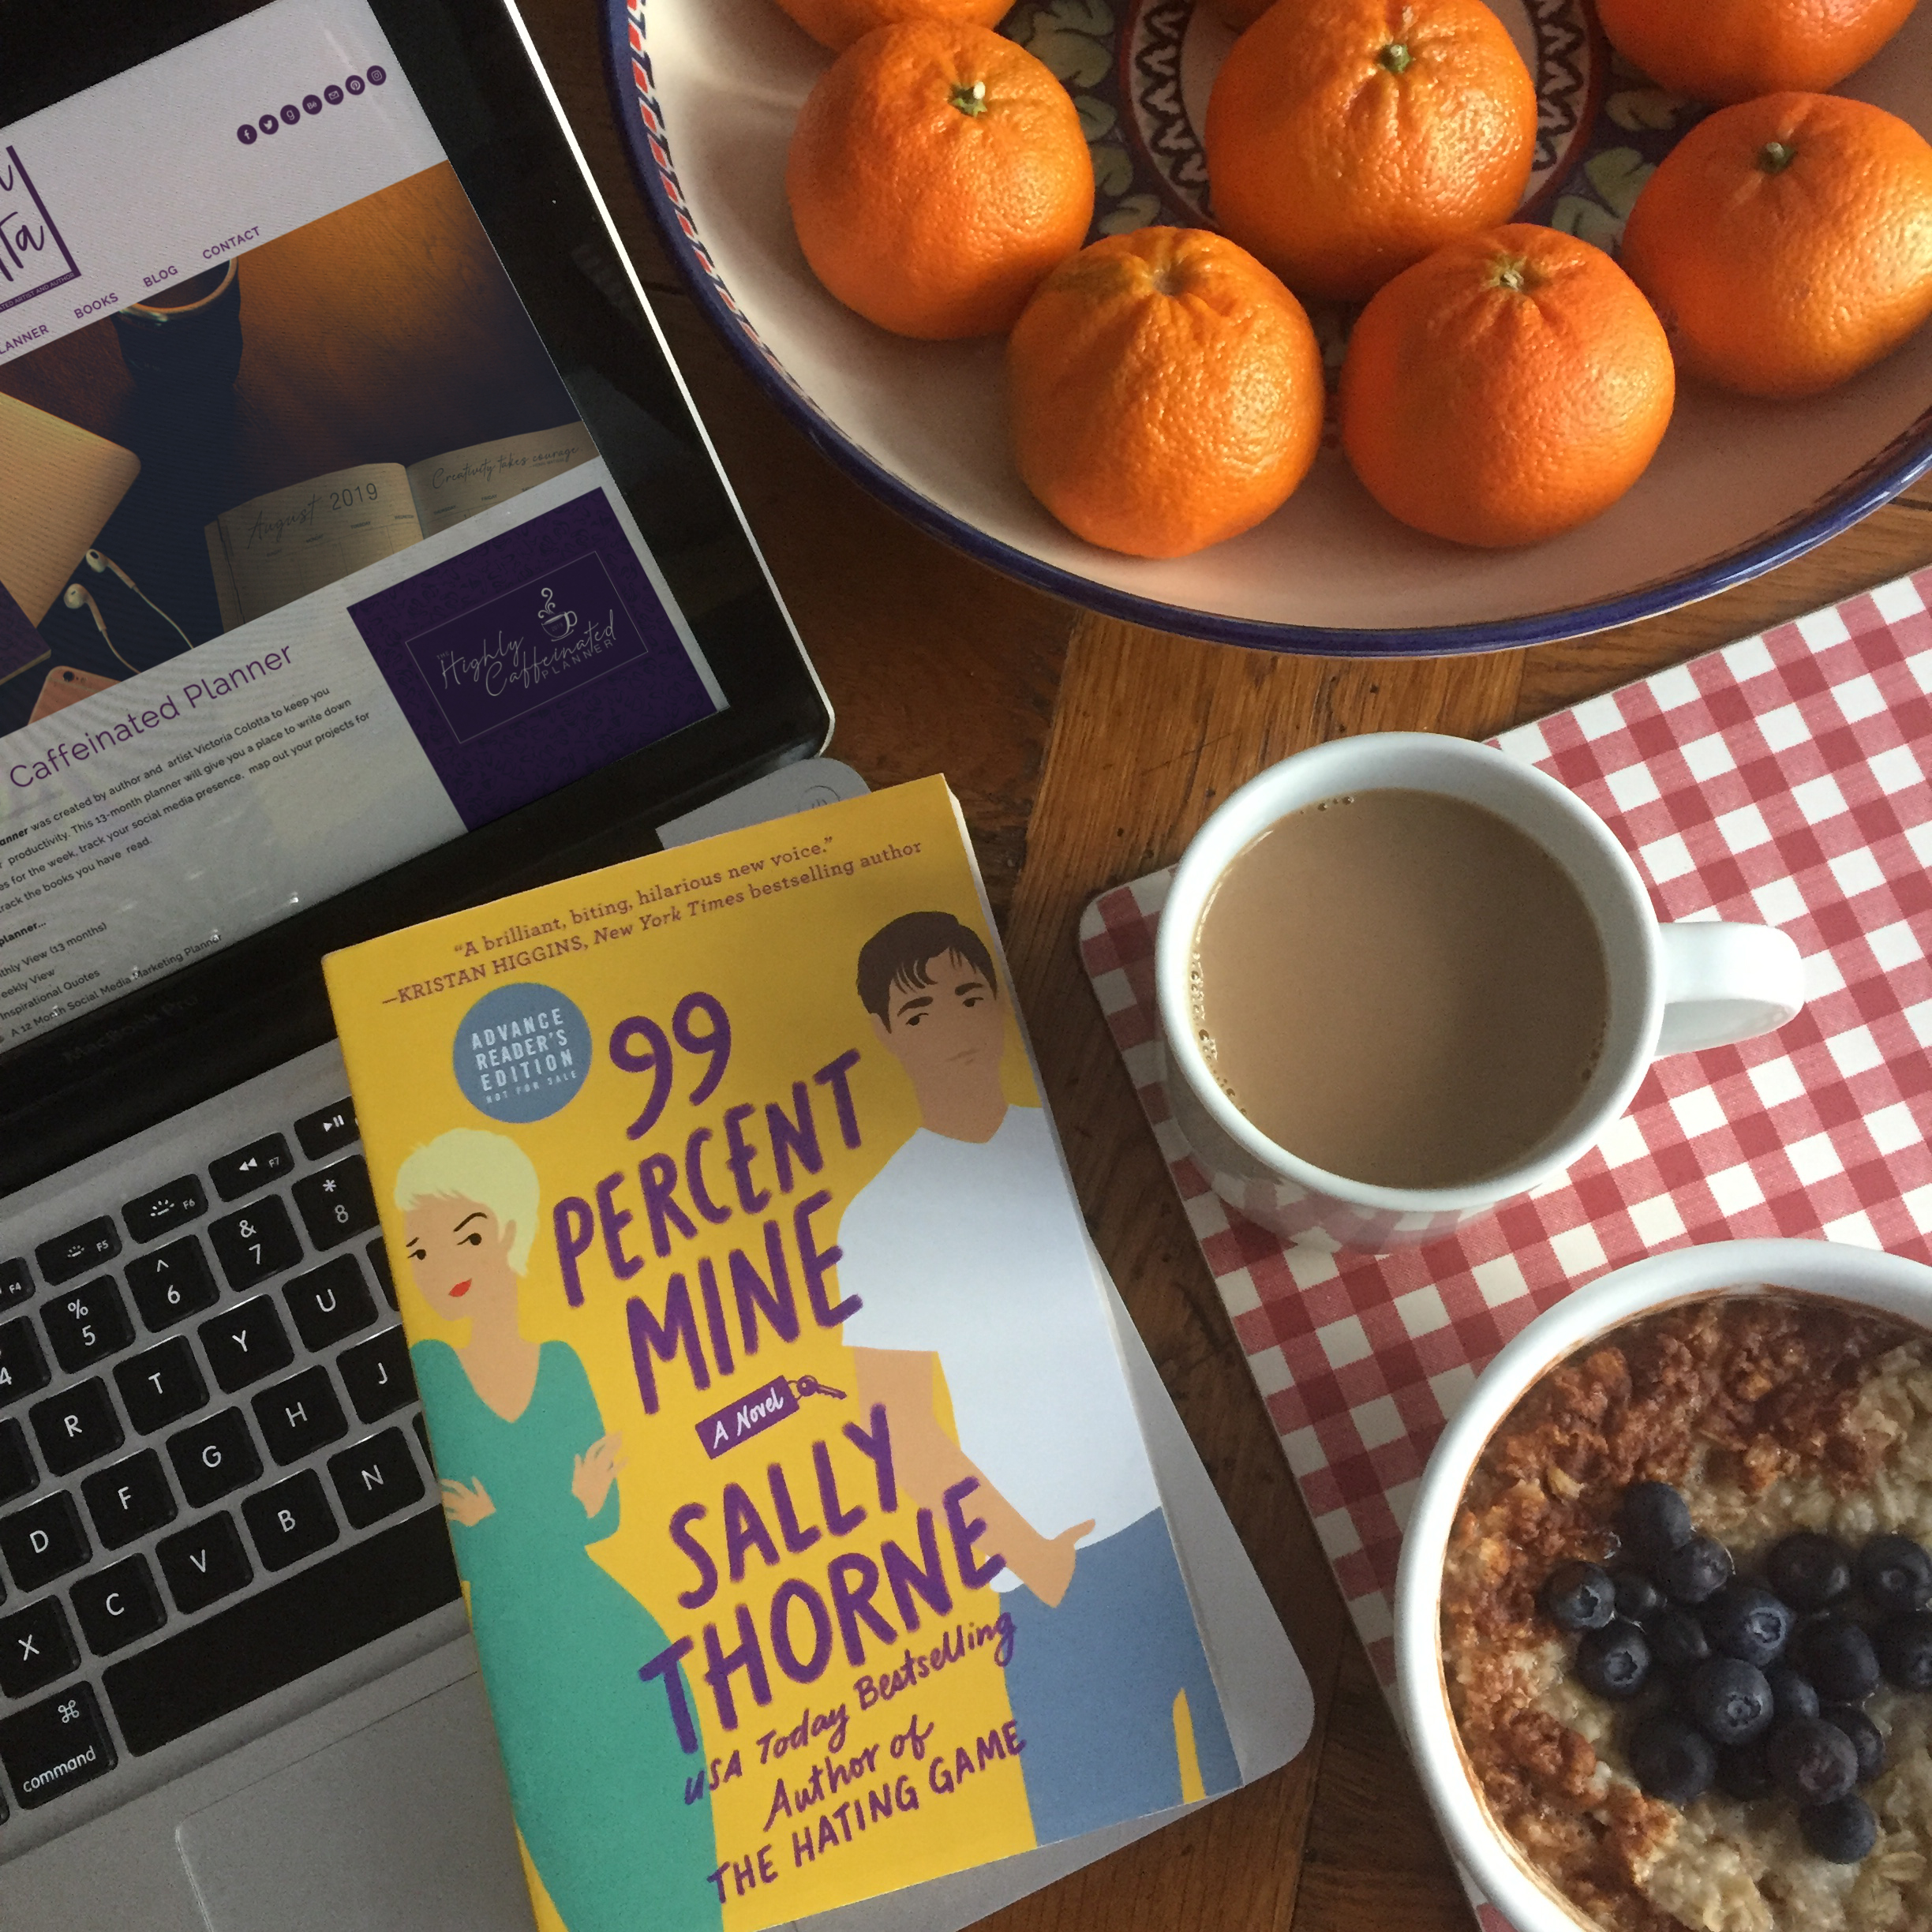 Book Review for 99 PERCENT MINE by Sally Thorne